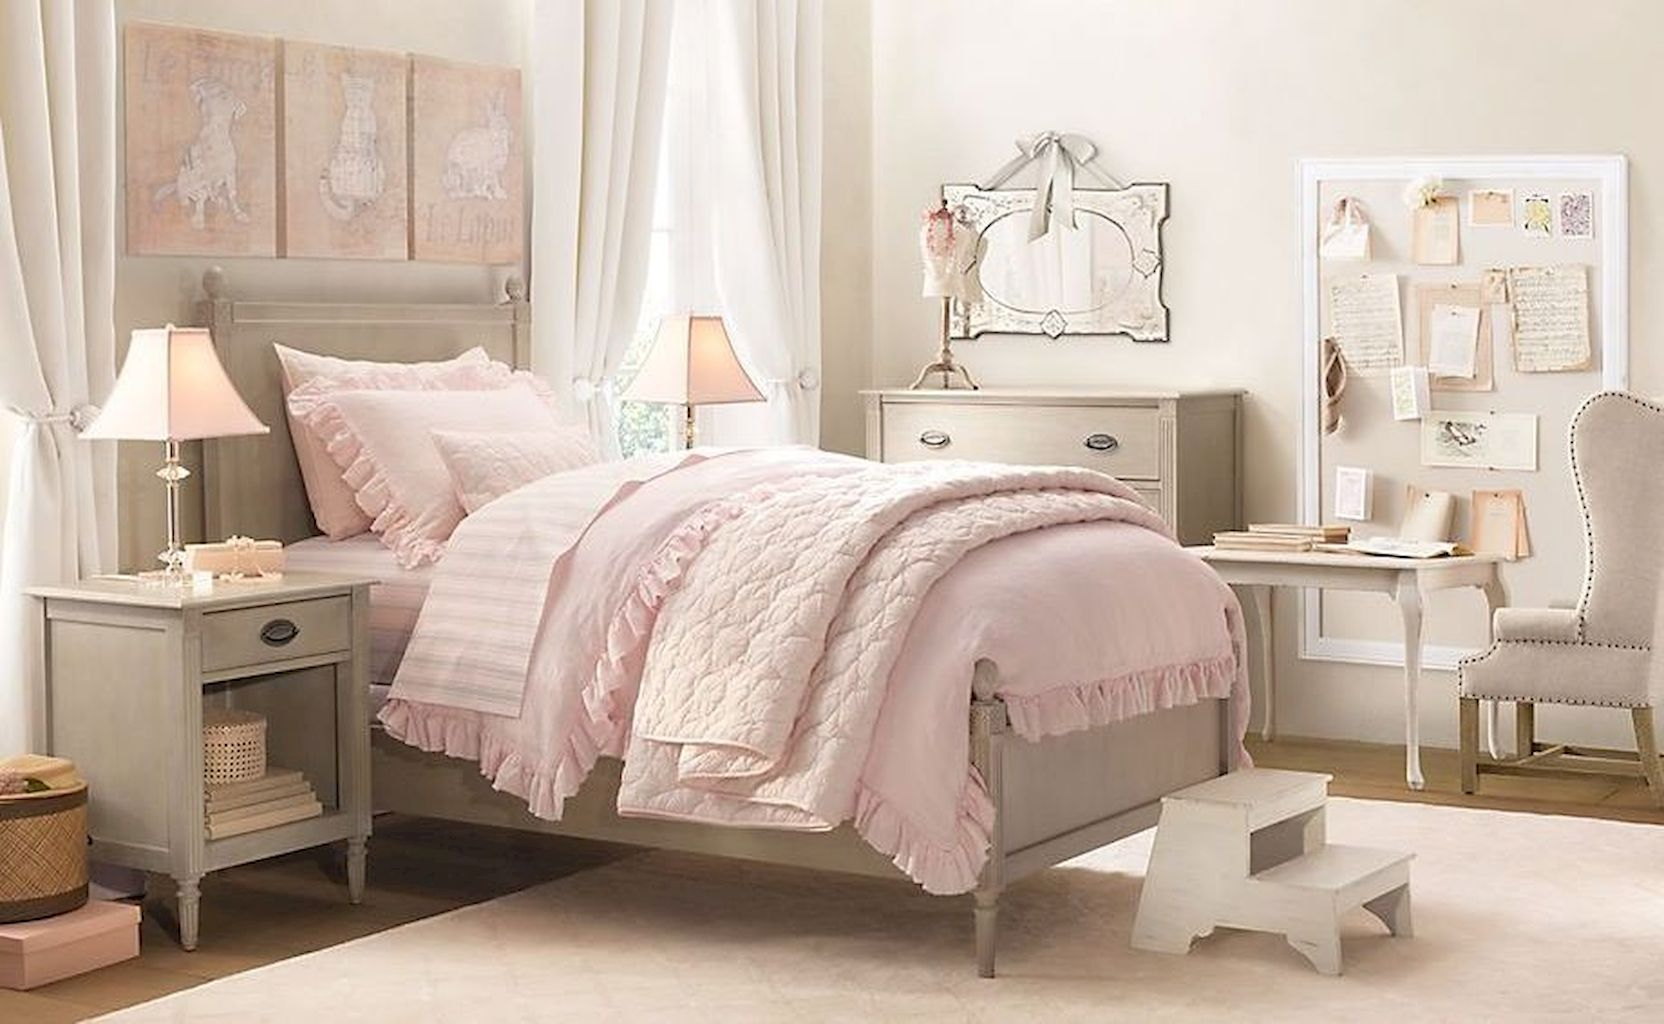 Cozy Single Bedroom Concept for Teens and Singles Part 10